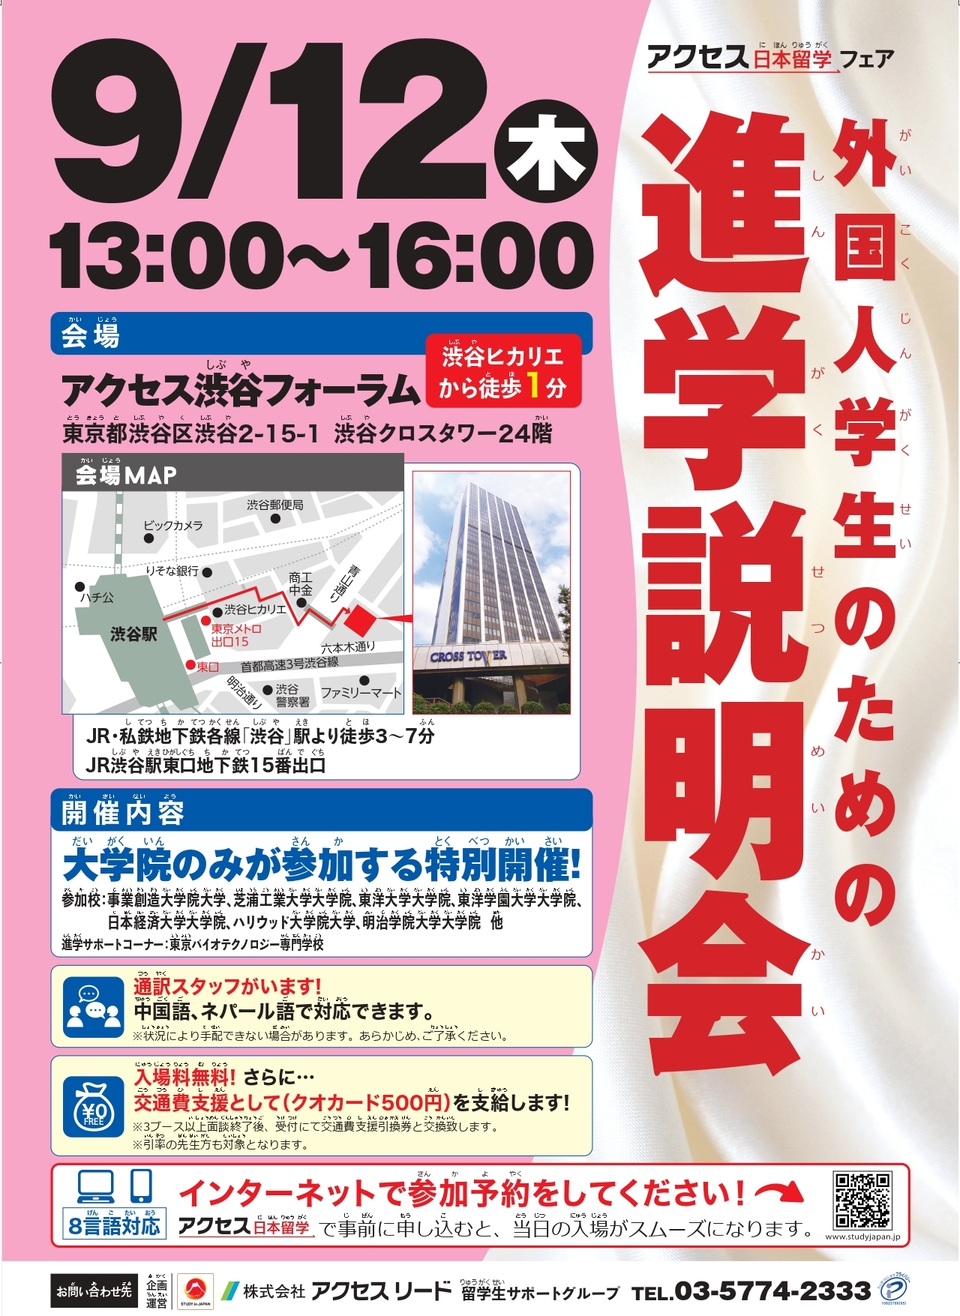 【Tokyo】 Schools Guidance for International Students September 12, 2019